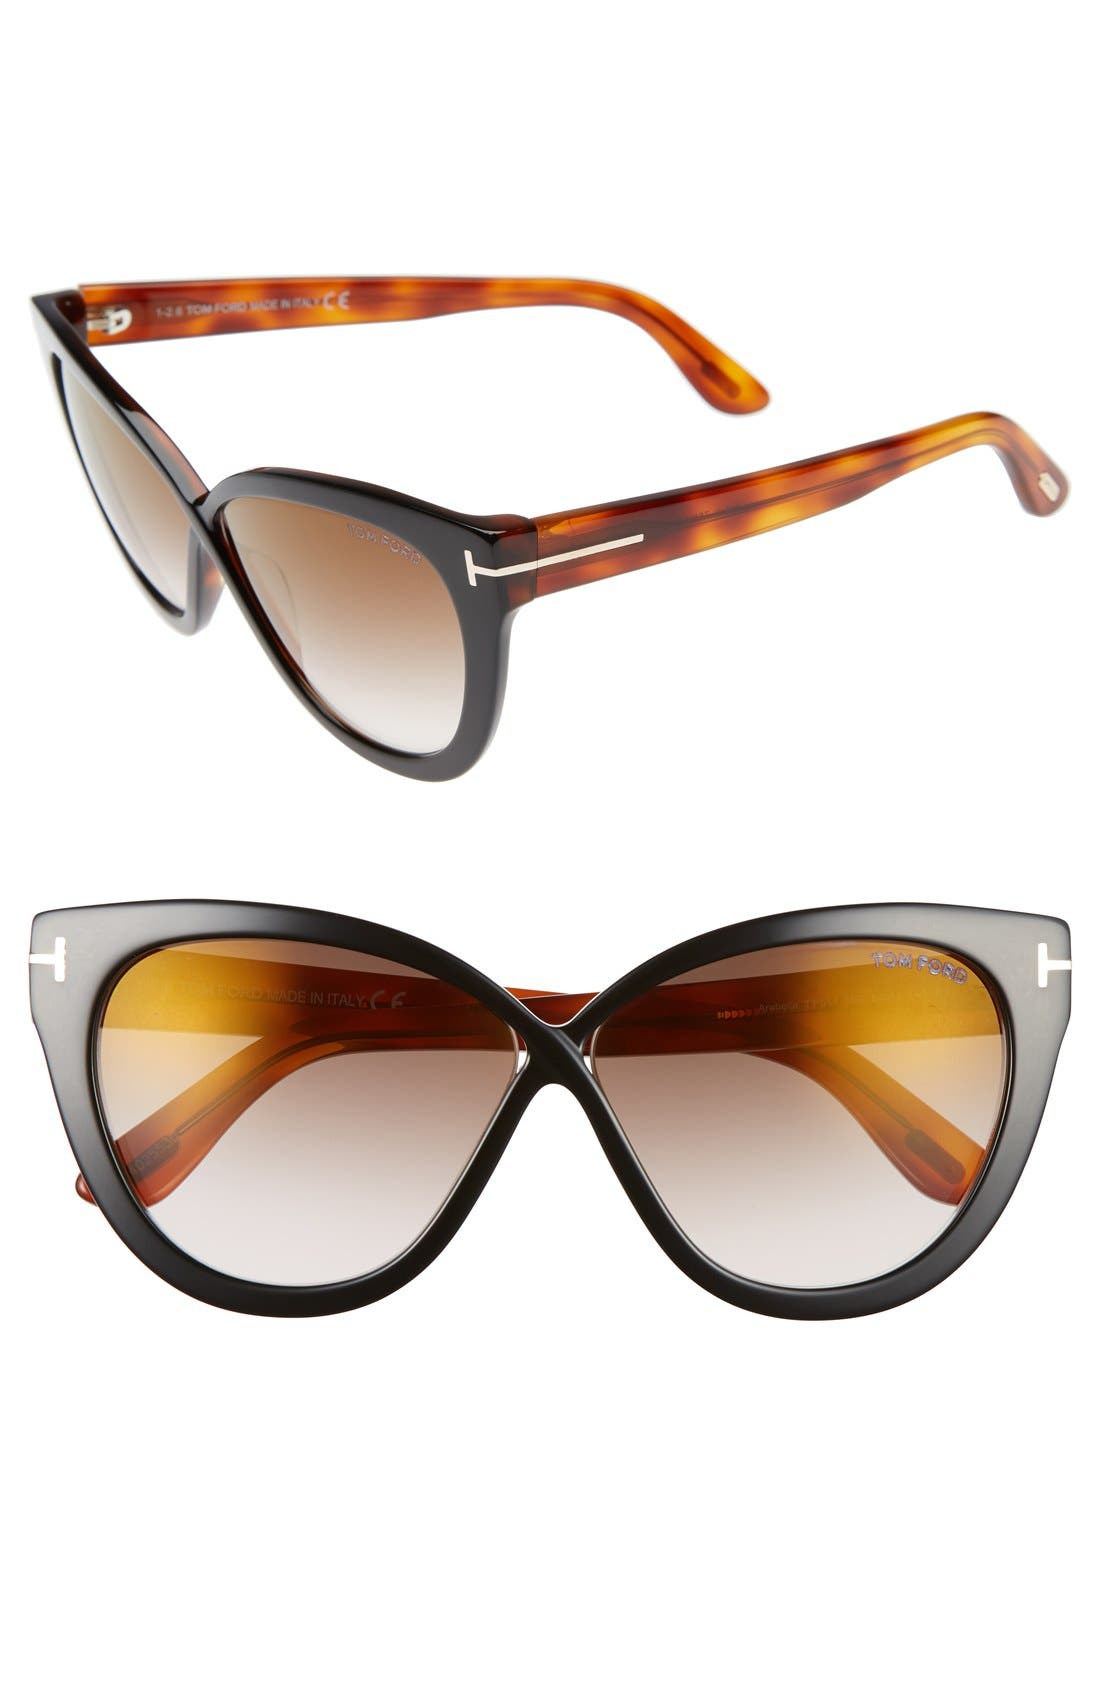 Arabella 59mm Cat Eye Sunglasses,                         Main,                         color, Black/ Havana/ Brown Flash